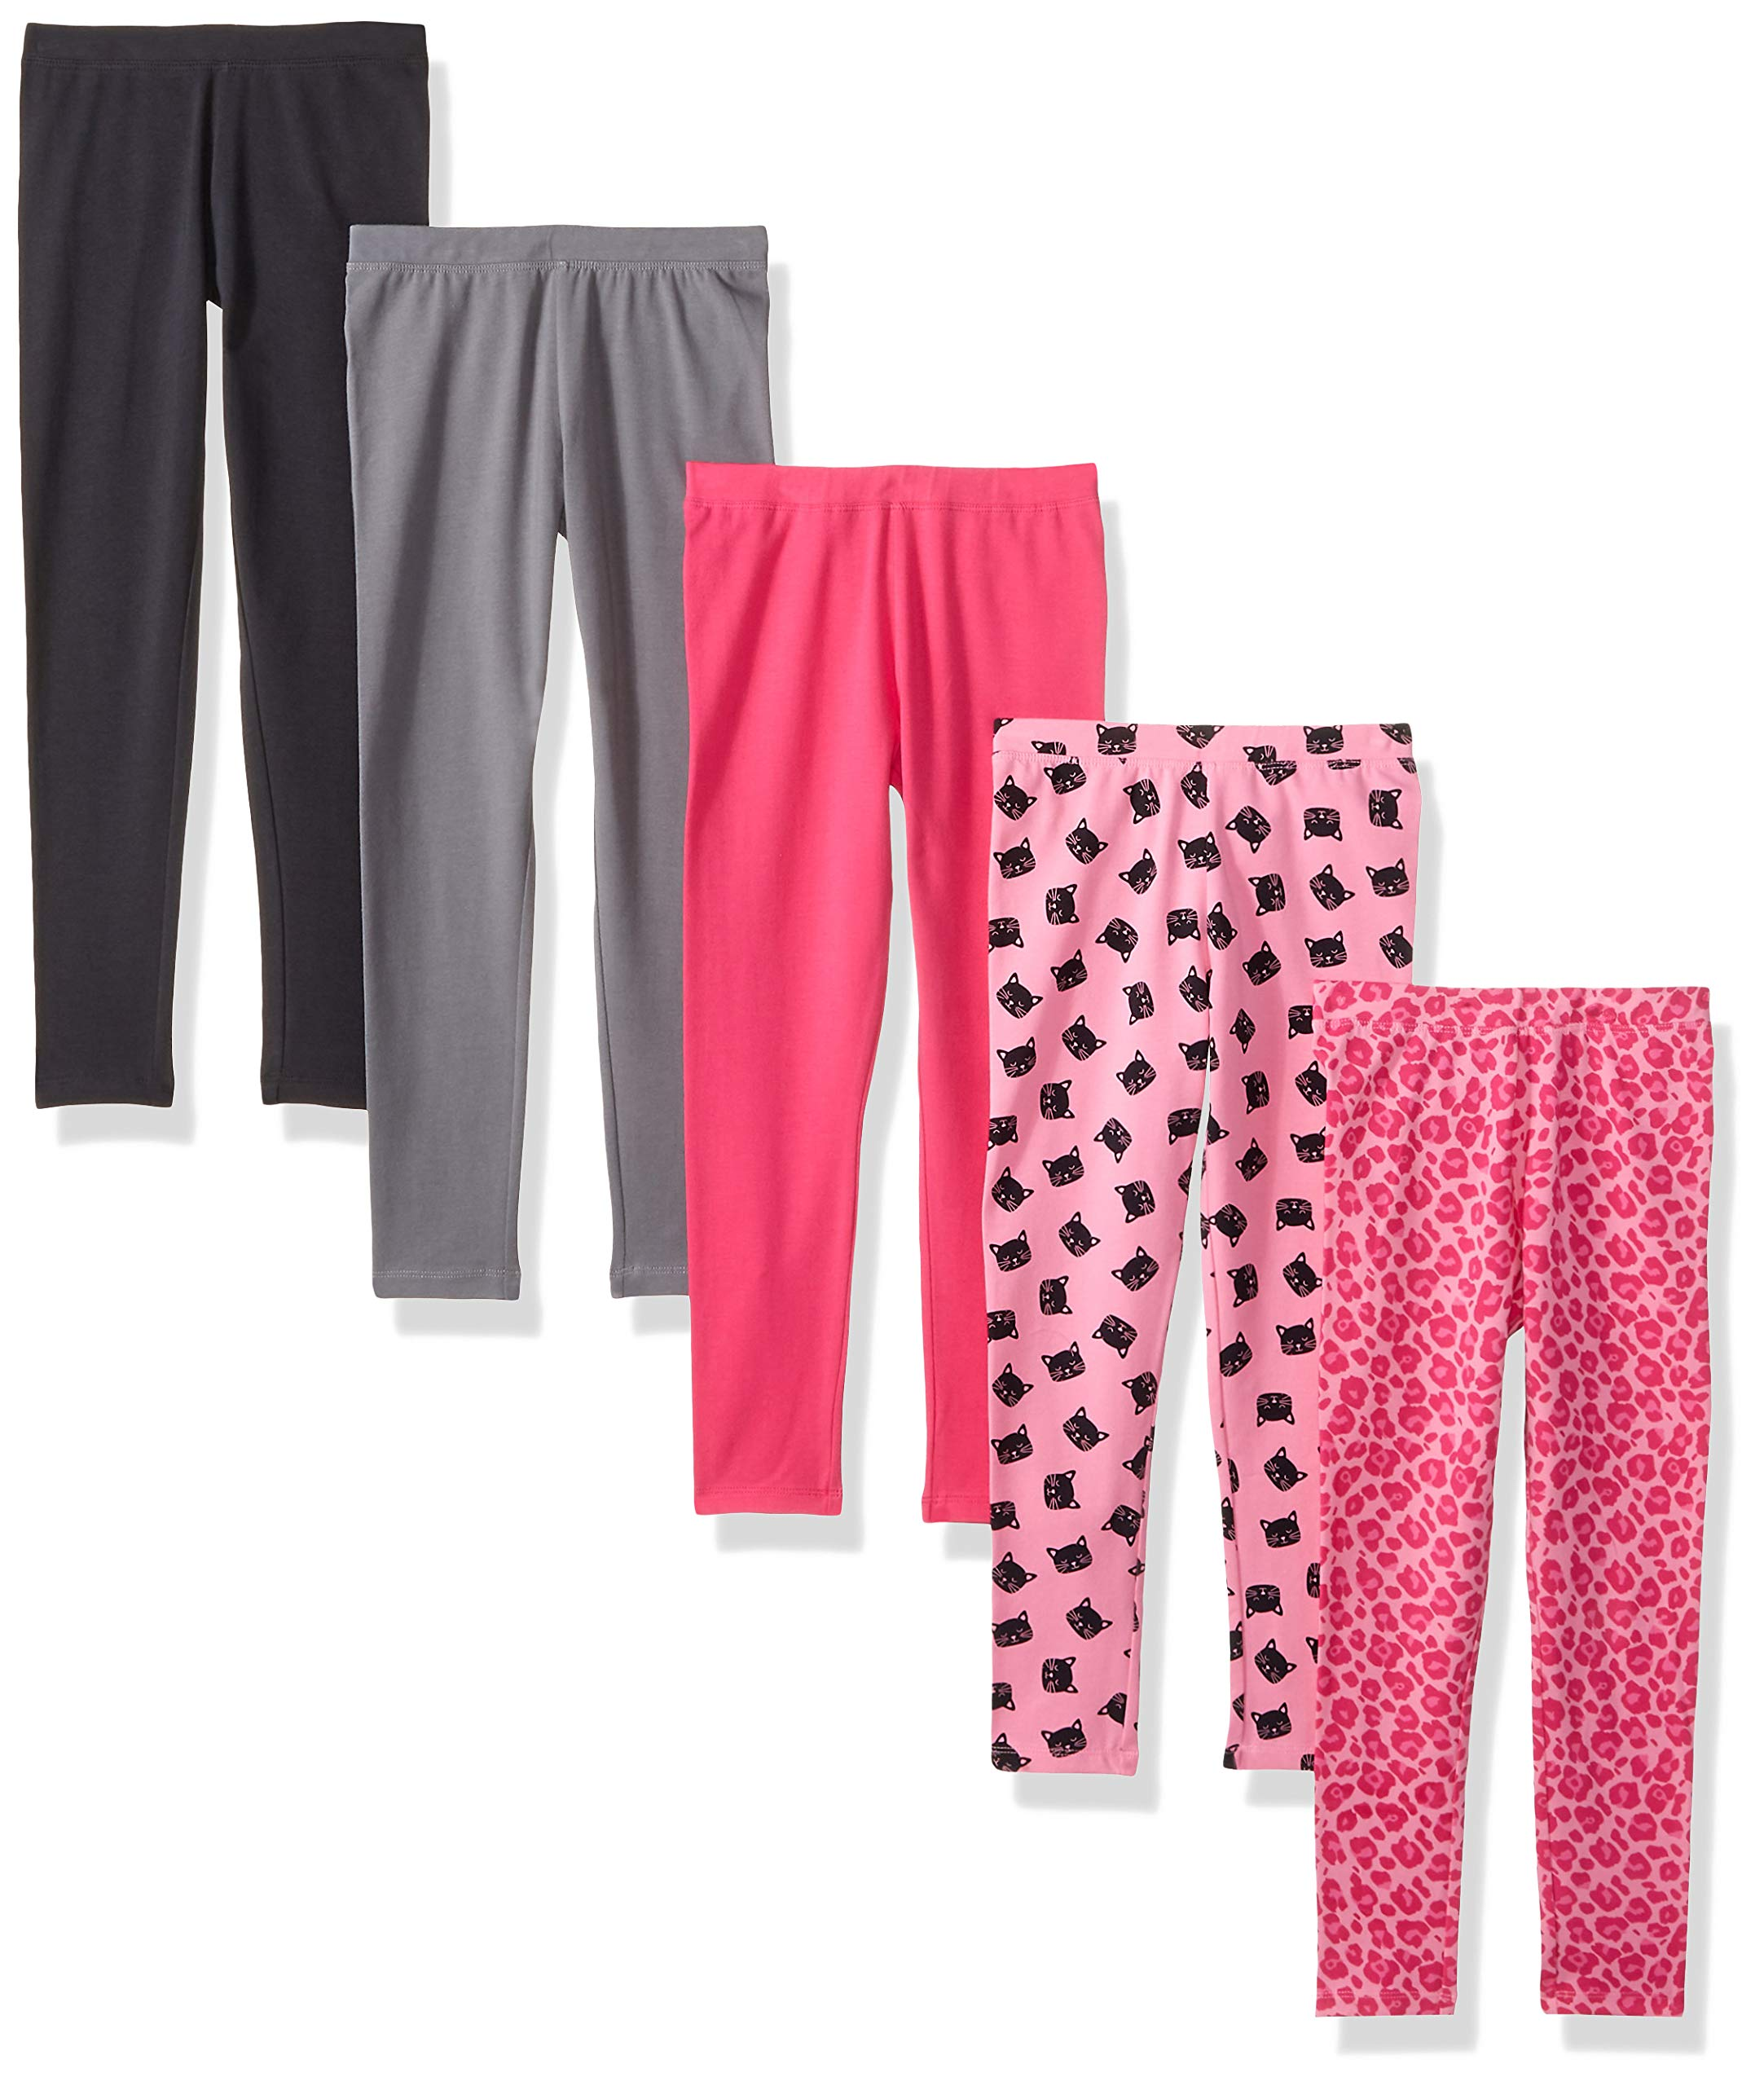 1c5bdce4a Amazon Brand - Spotted Zebra Girls' Toddler & Kids 5-Pack Leggings product  image